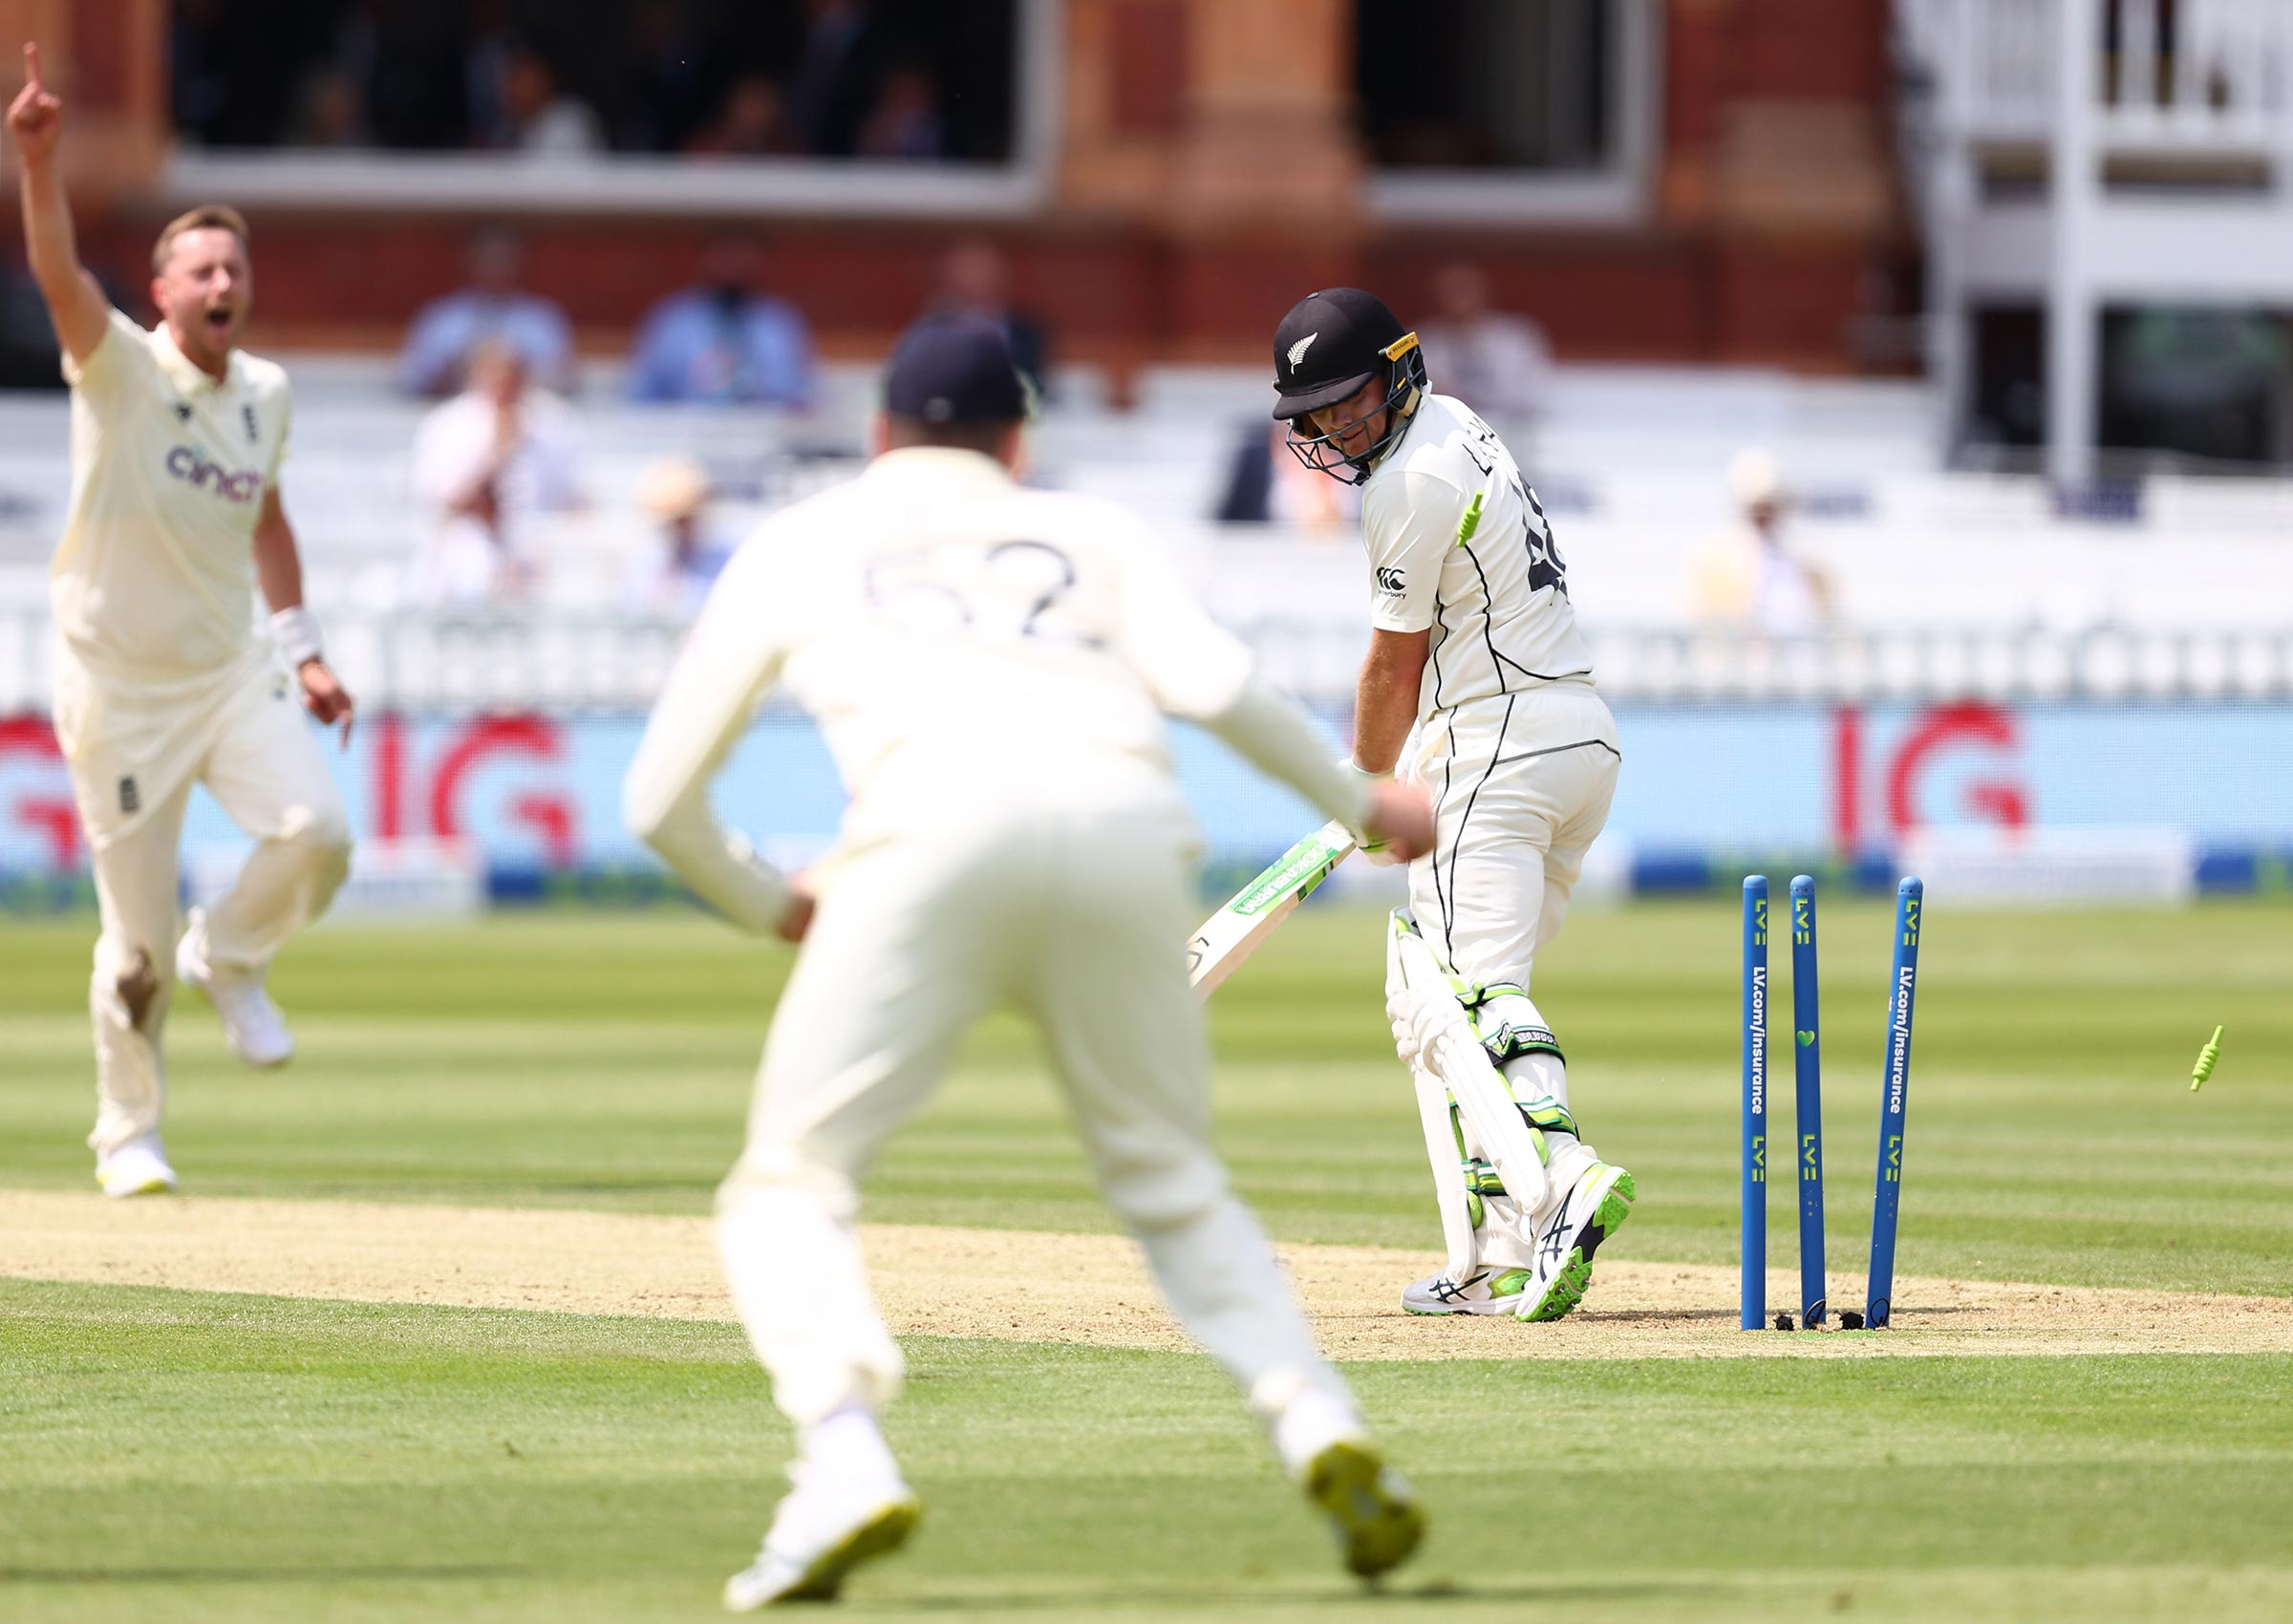 Robinson picks up his first Test wicket // Getty